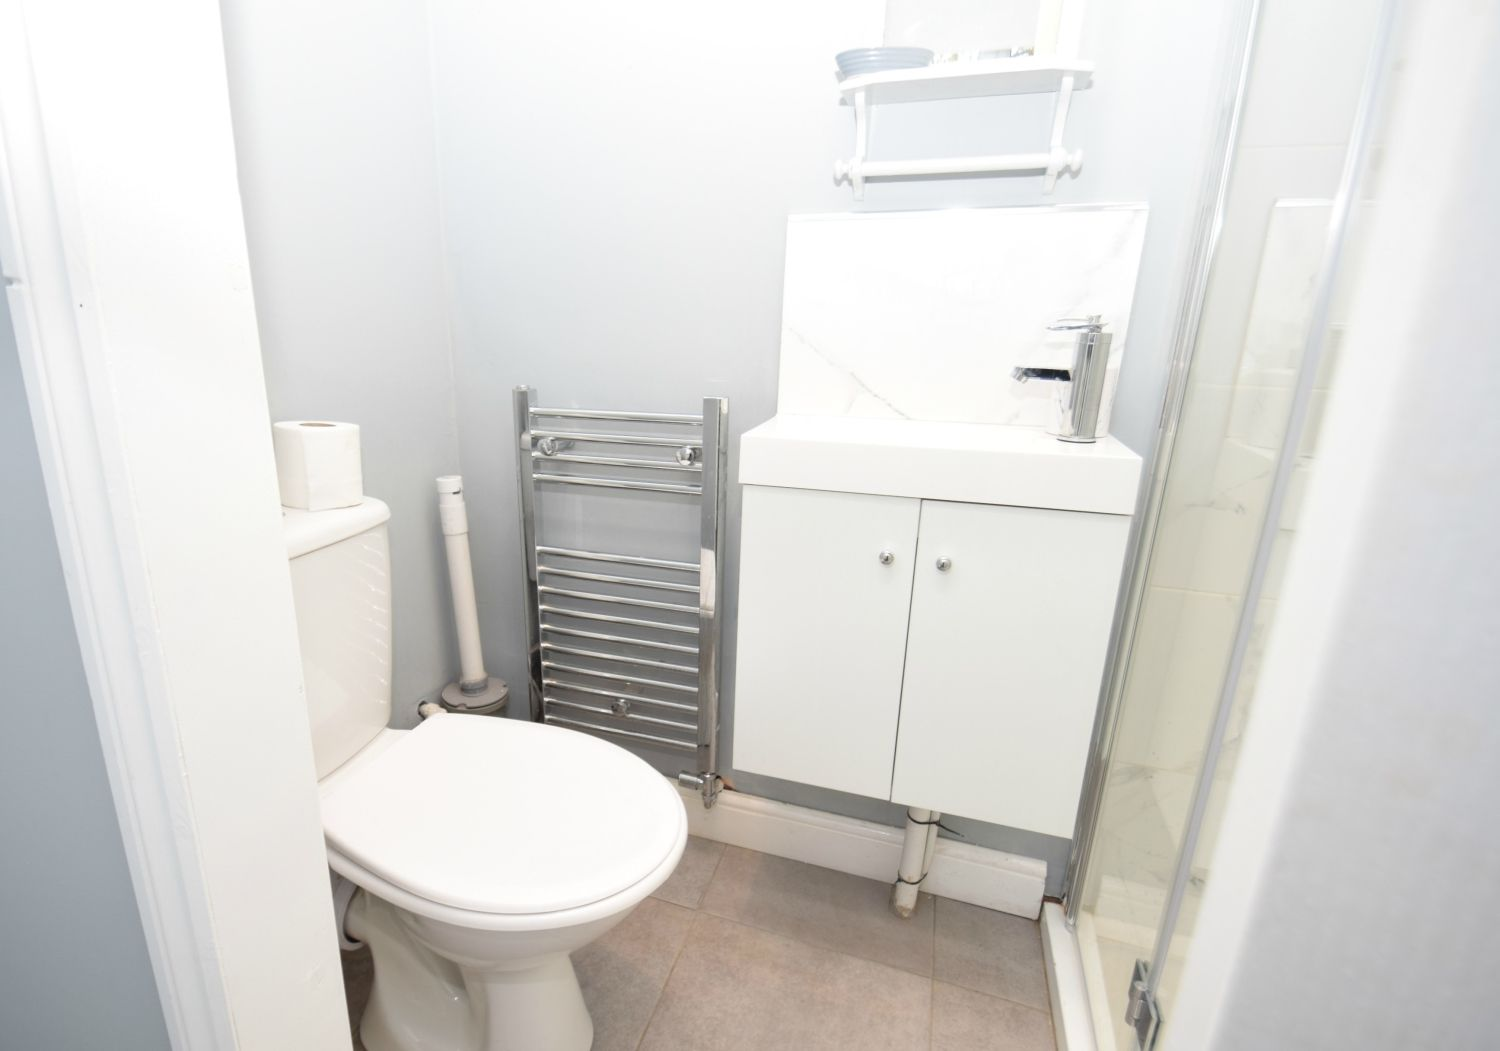 4 bed semi-detached for sale in Upland Grove, Bromsgrove, B61 14